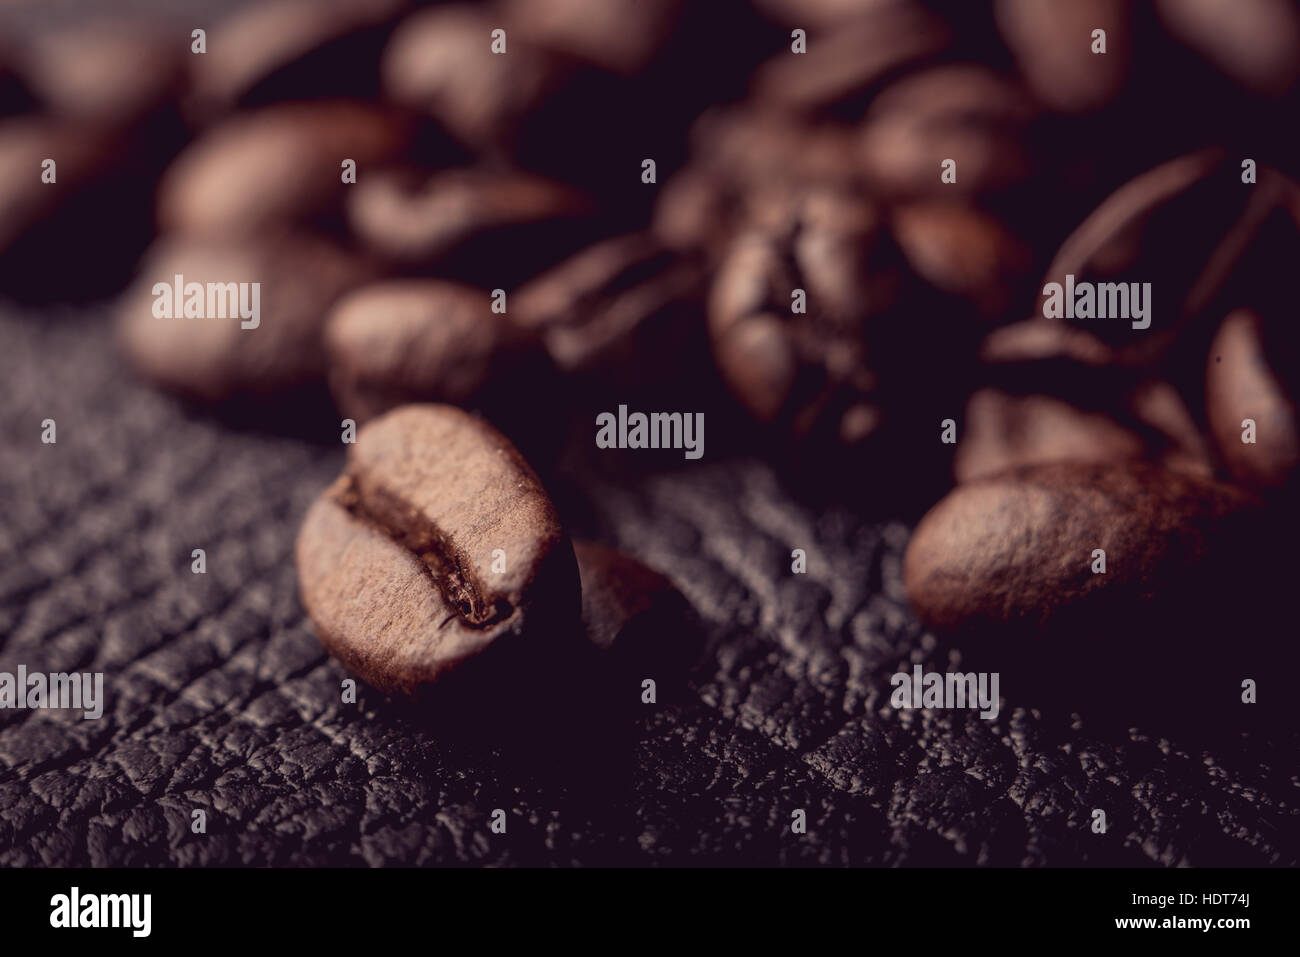 Coffee beans on the leather surface, makro pgotography, cafe concept - Stock Image